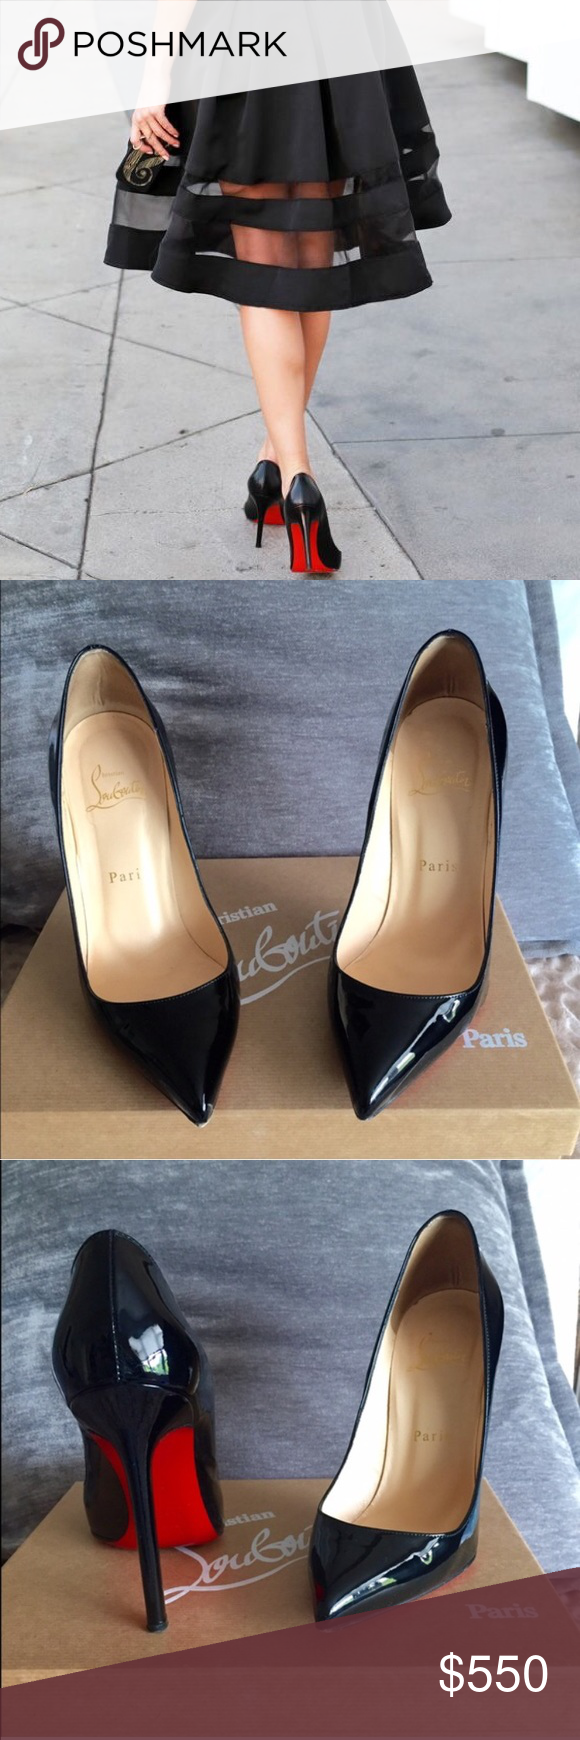 38974e6e8b83 Christian Louboutin Pigalle 120 Authentic Christian Louboutins verified by  Poshmark Concierge. Lightly worn